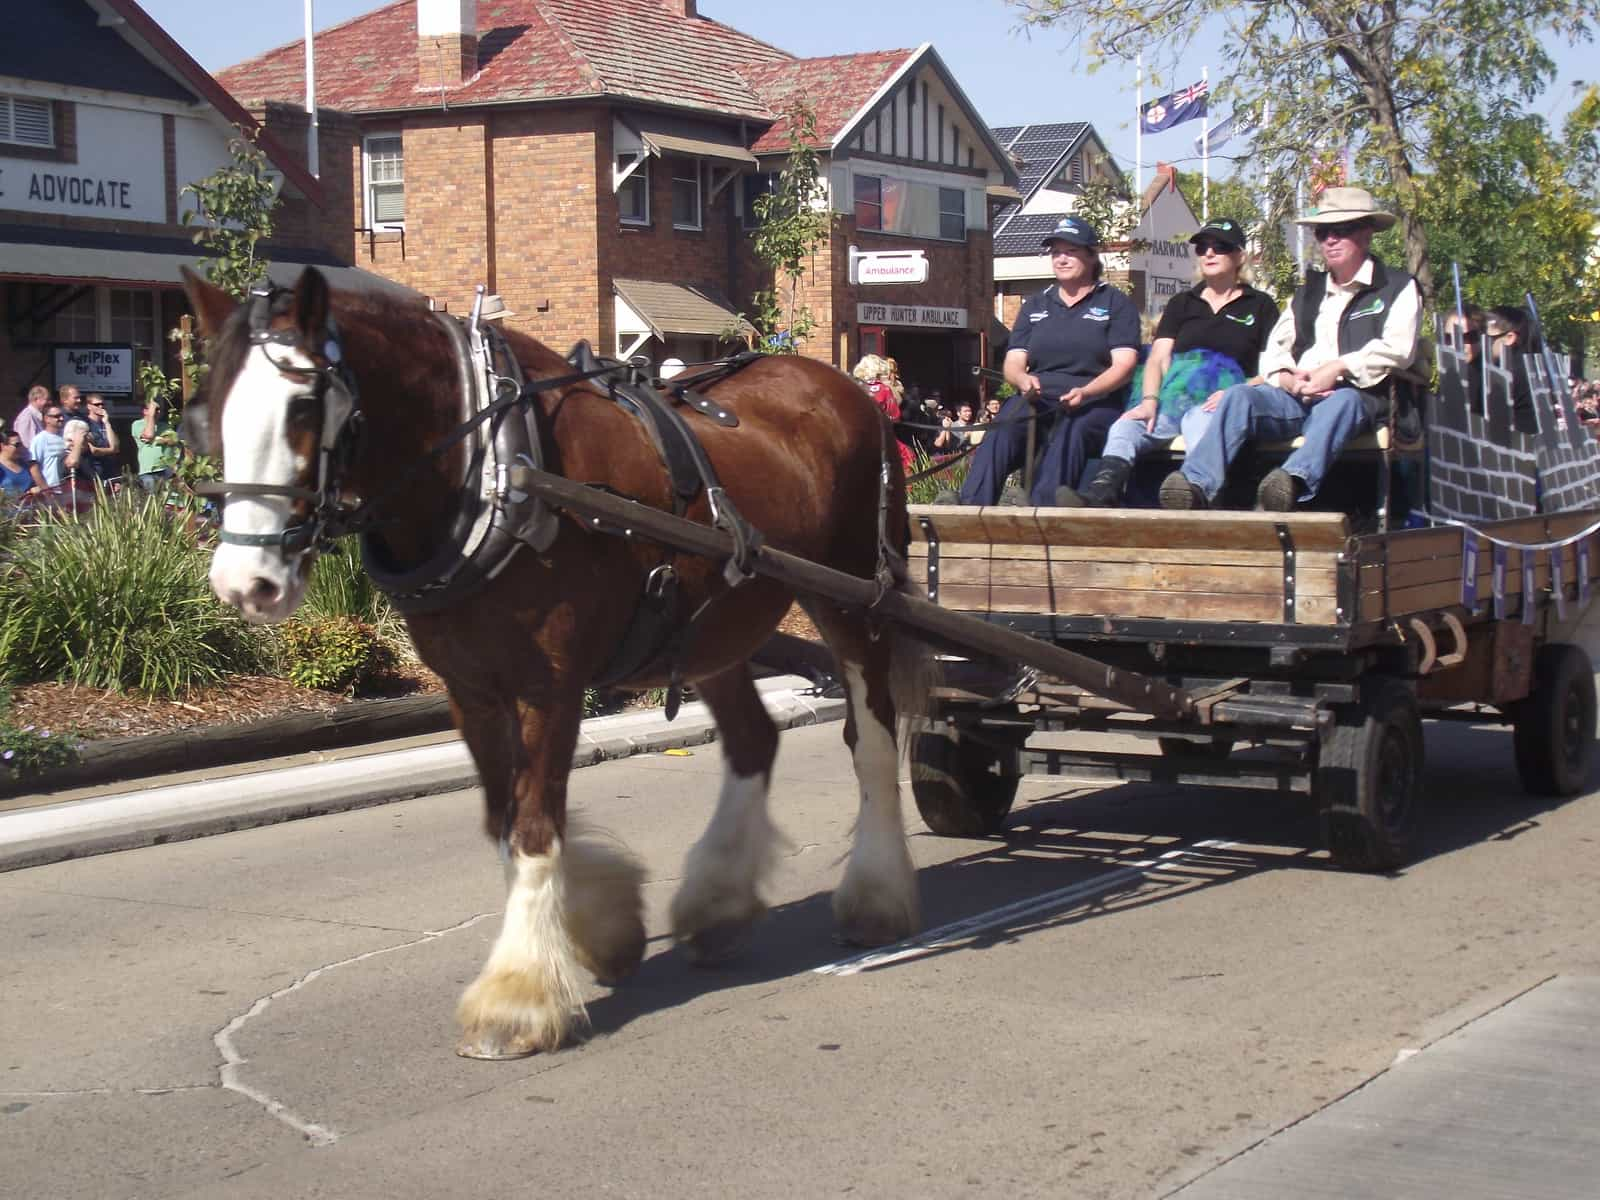 How much weight can a Clydesdale carry